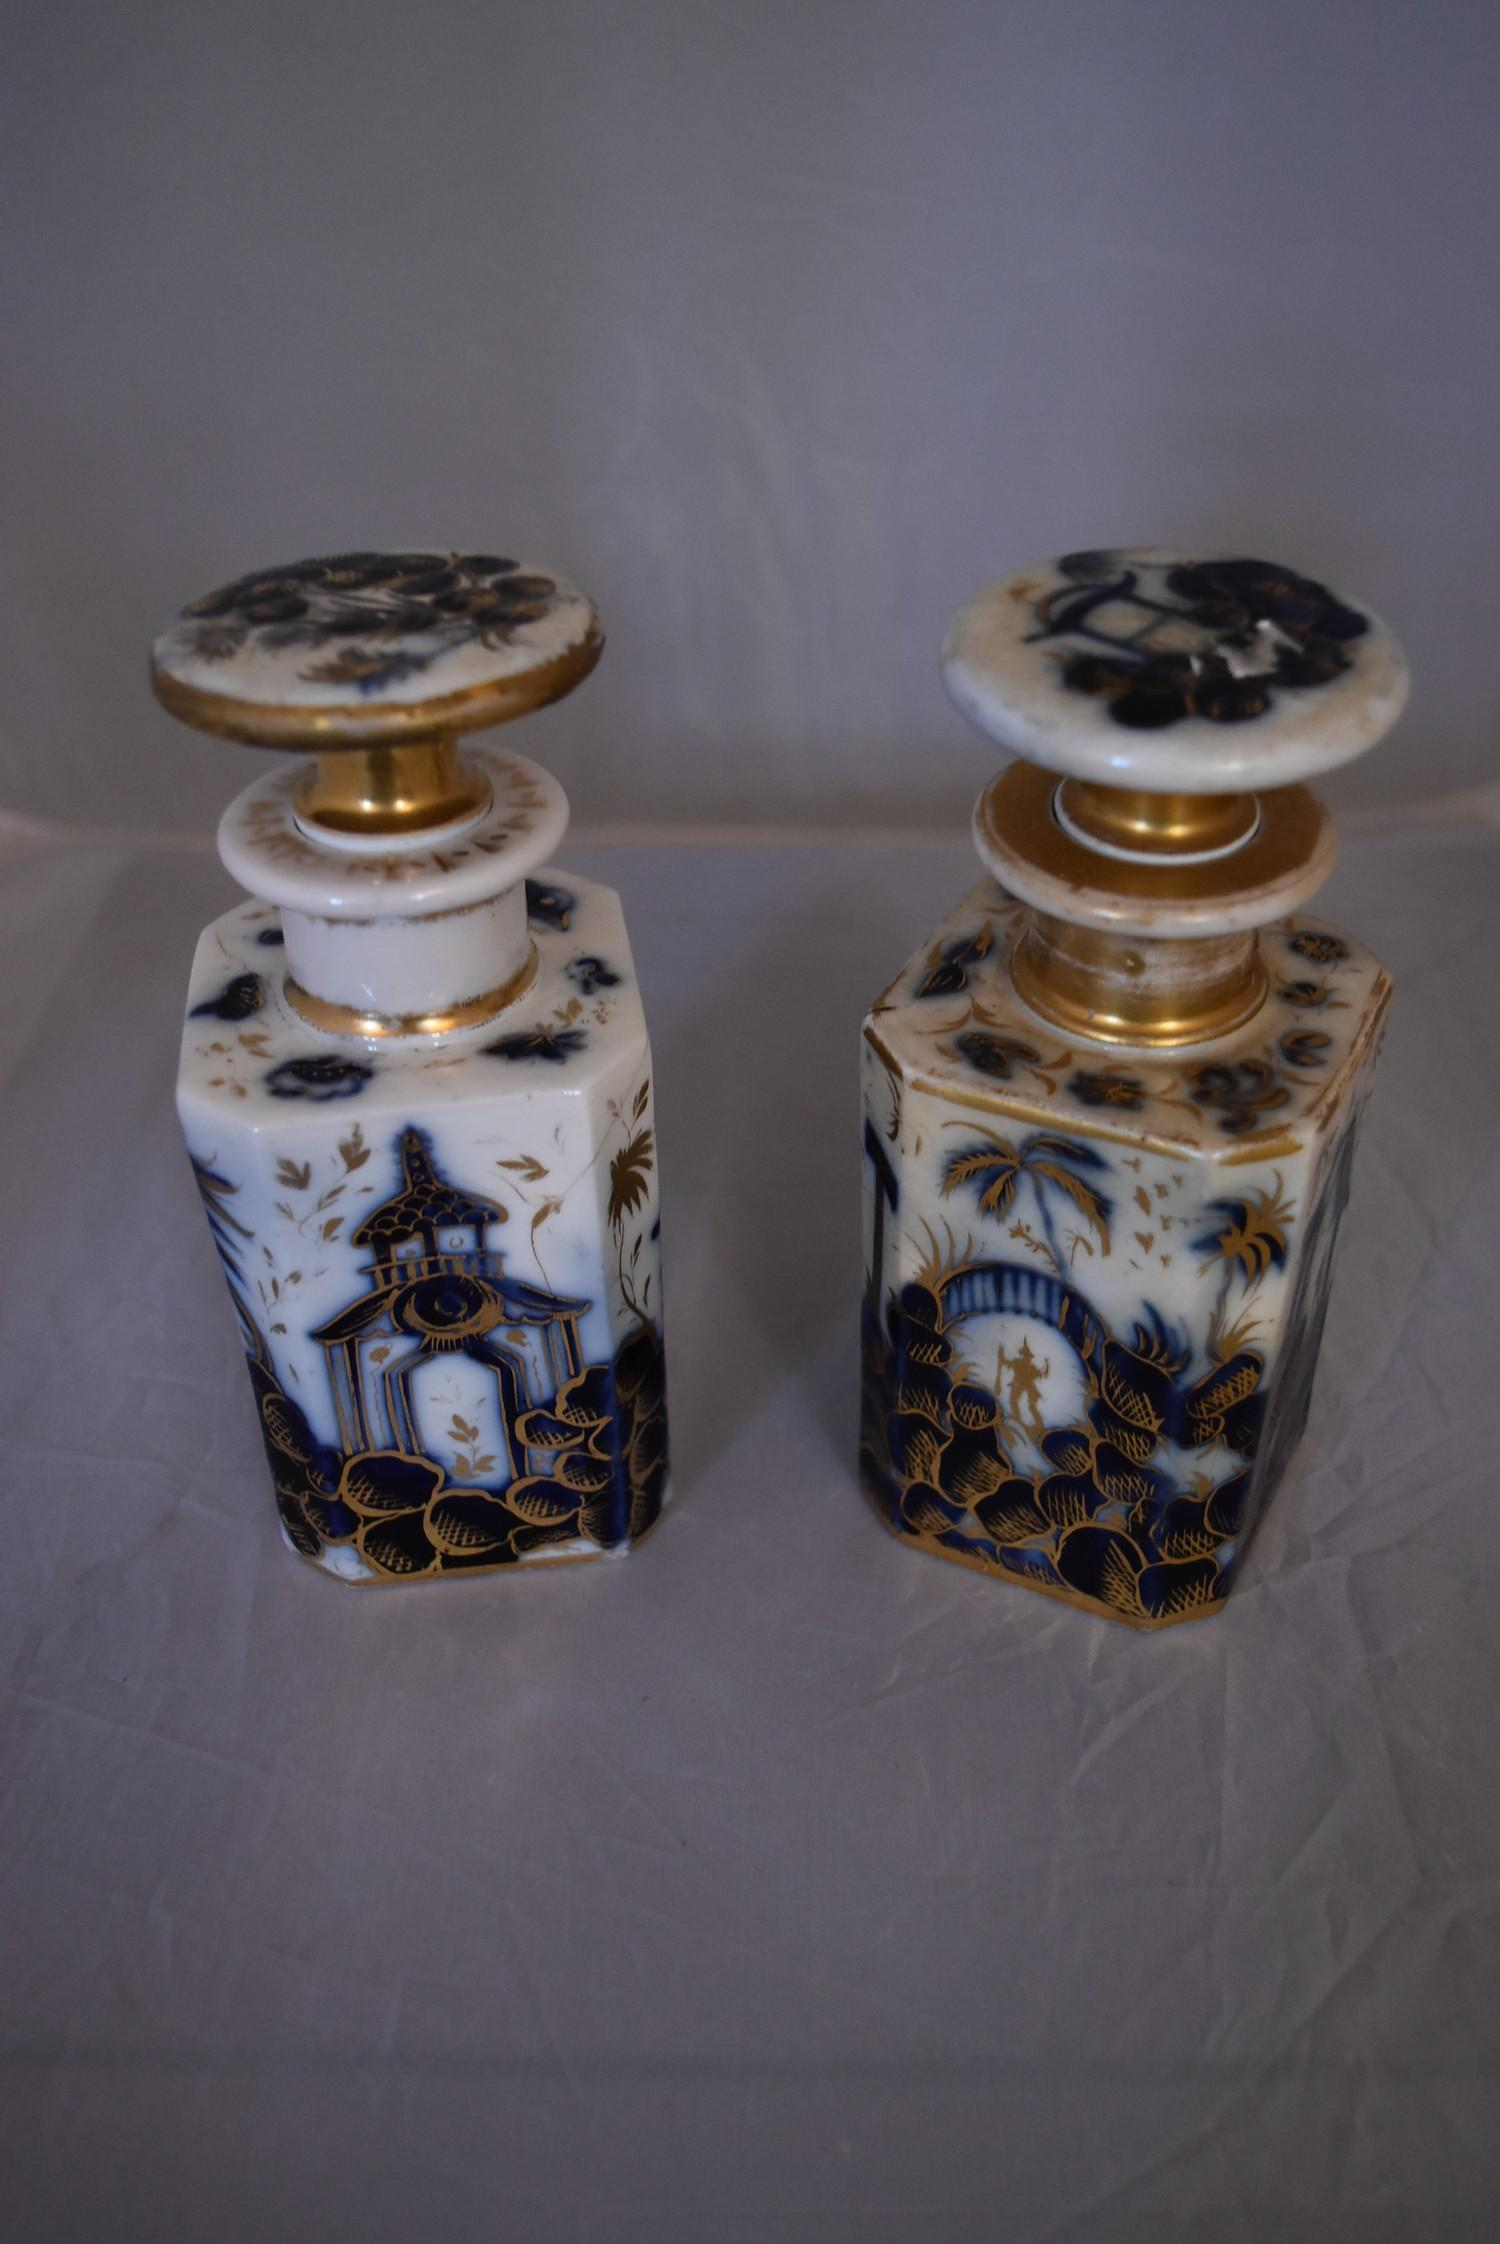 A pair of blue and white French porcelain scent bottles with oriental design and gilded accents. - Image 2 of 6